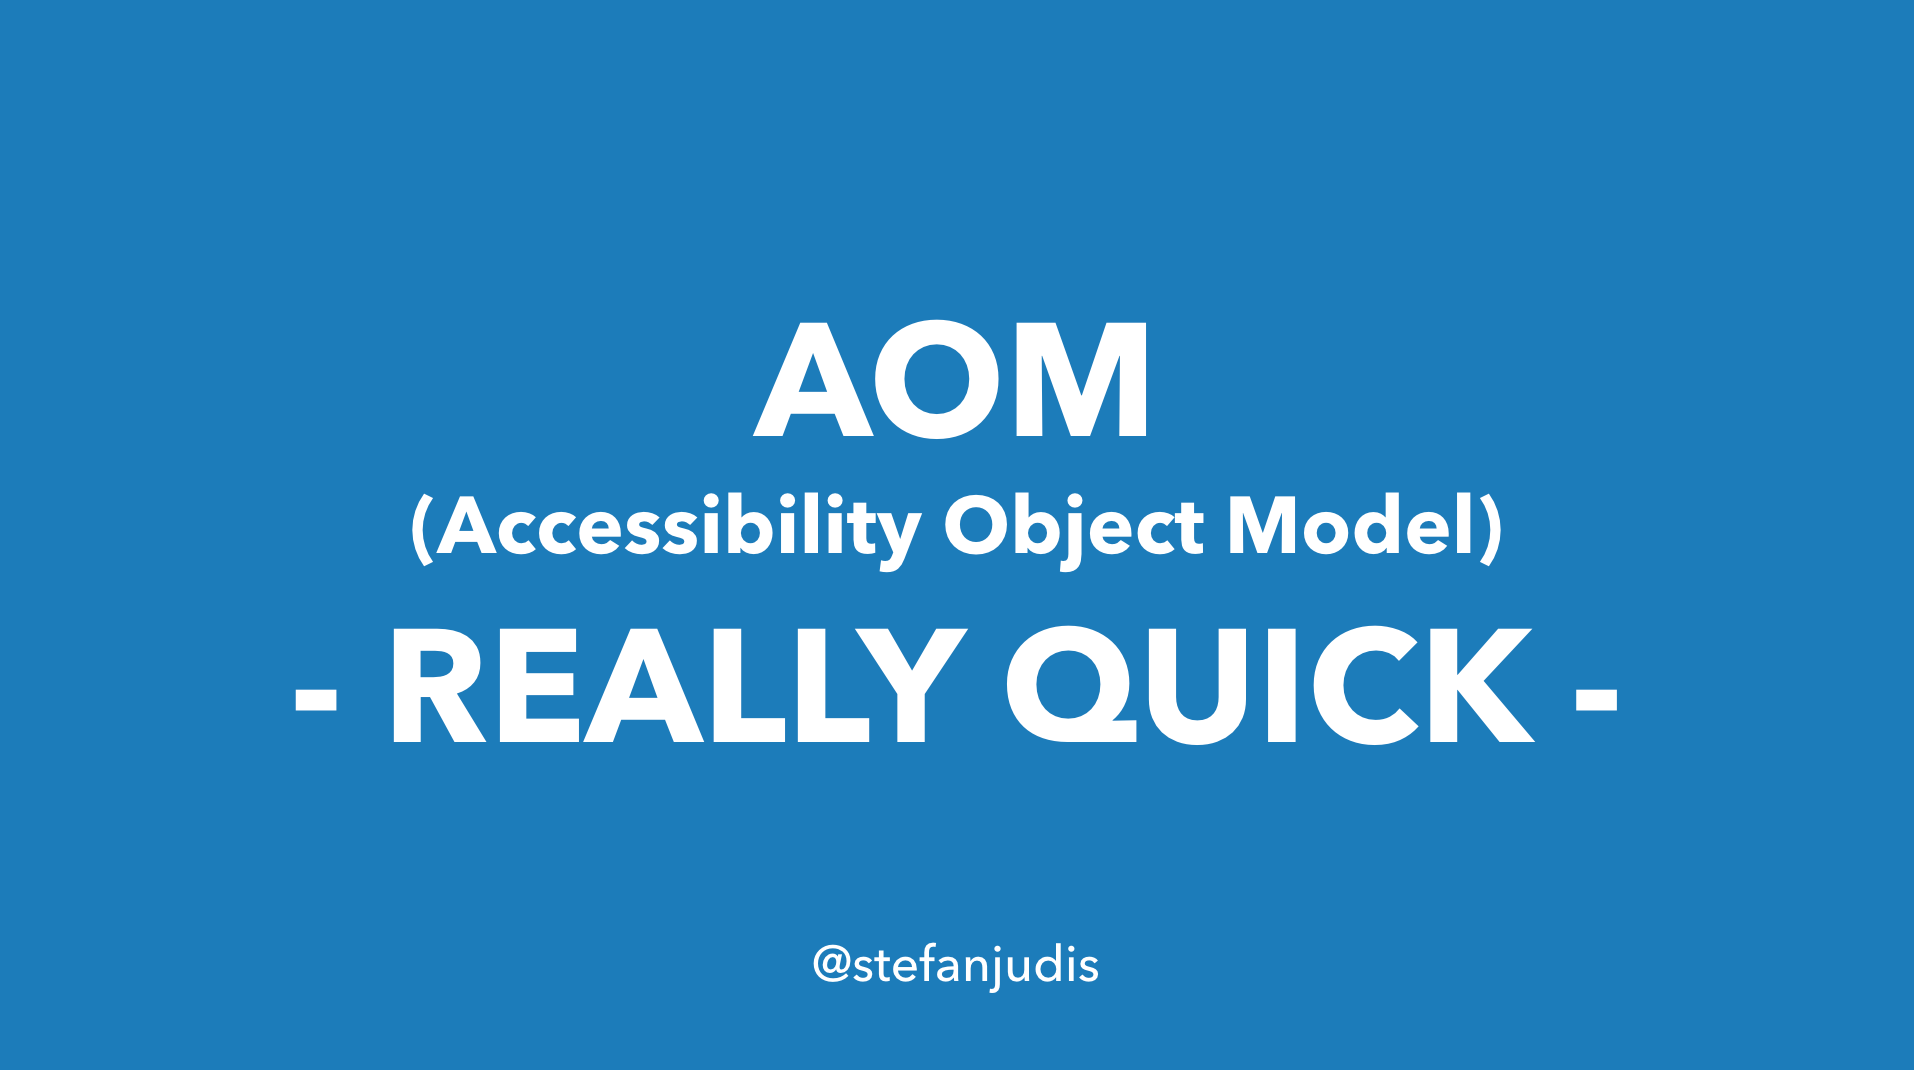 AOM (Accessibility Object Model) – really quick!